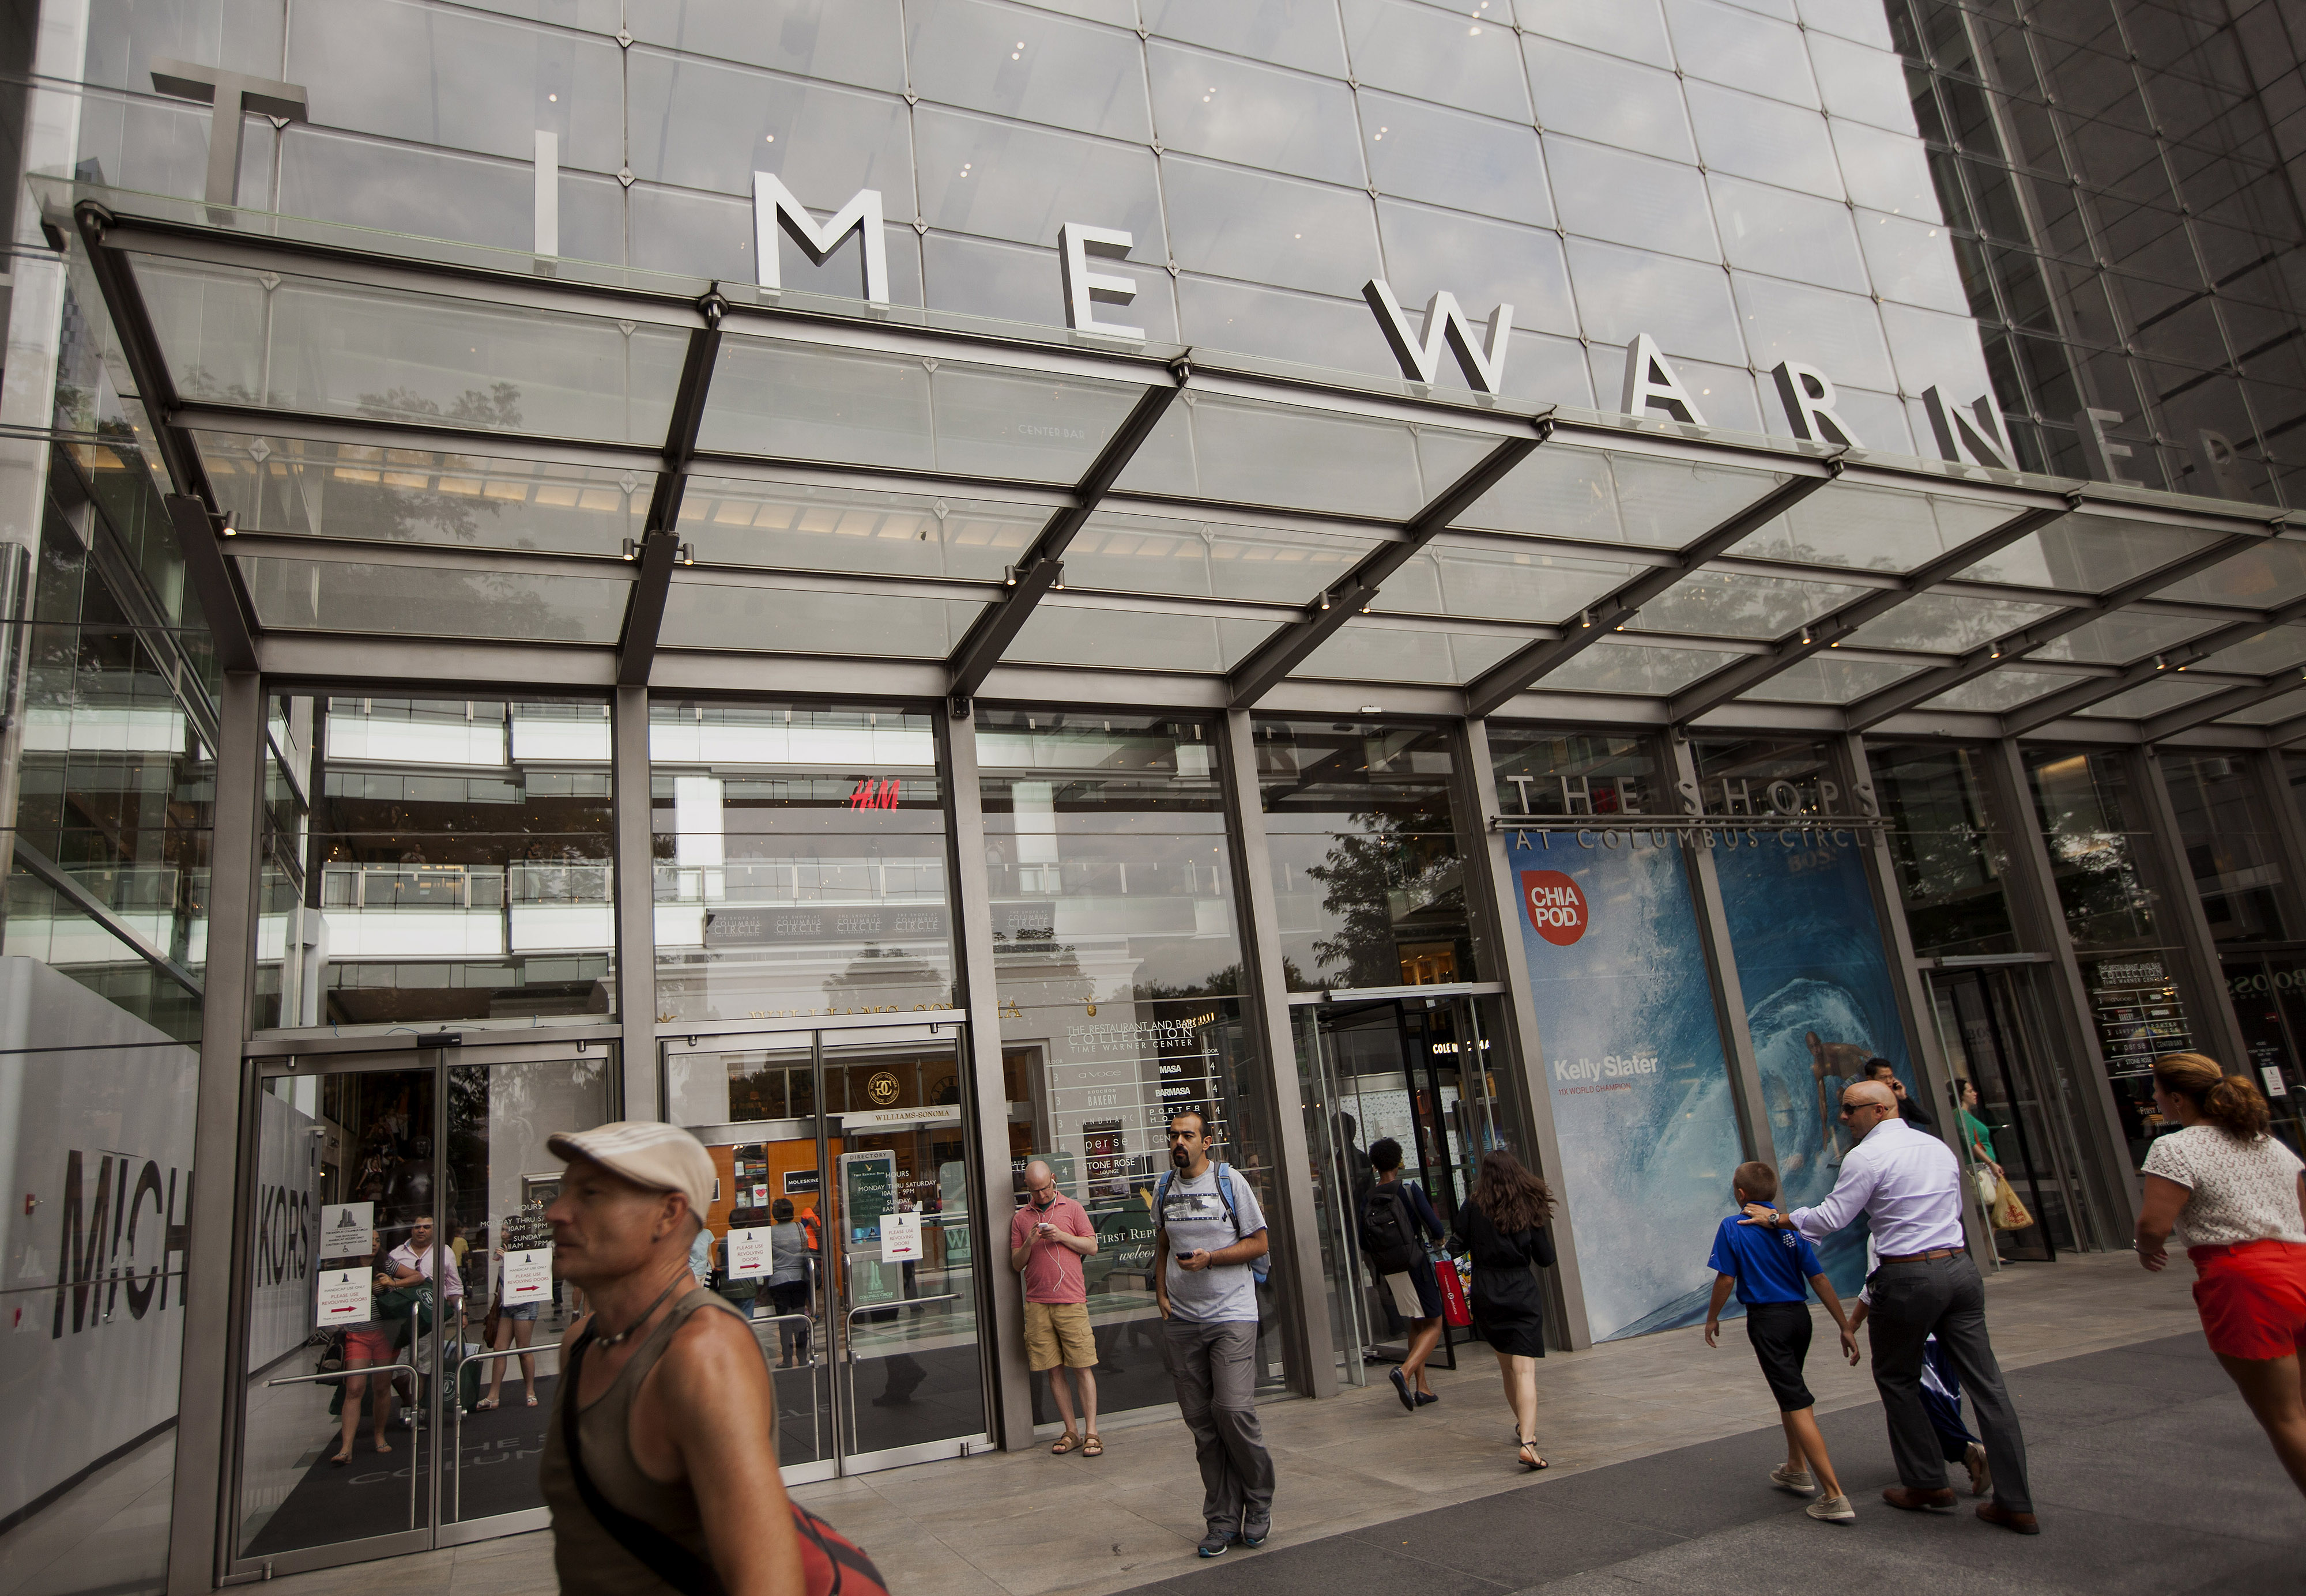 Pedestrians walk past the Time Warner Center in New York, U.S., on Monday, July 21, 2014.